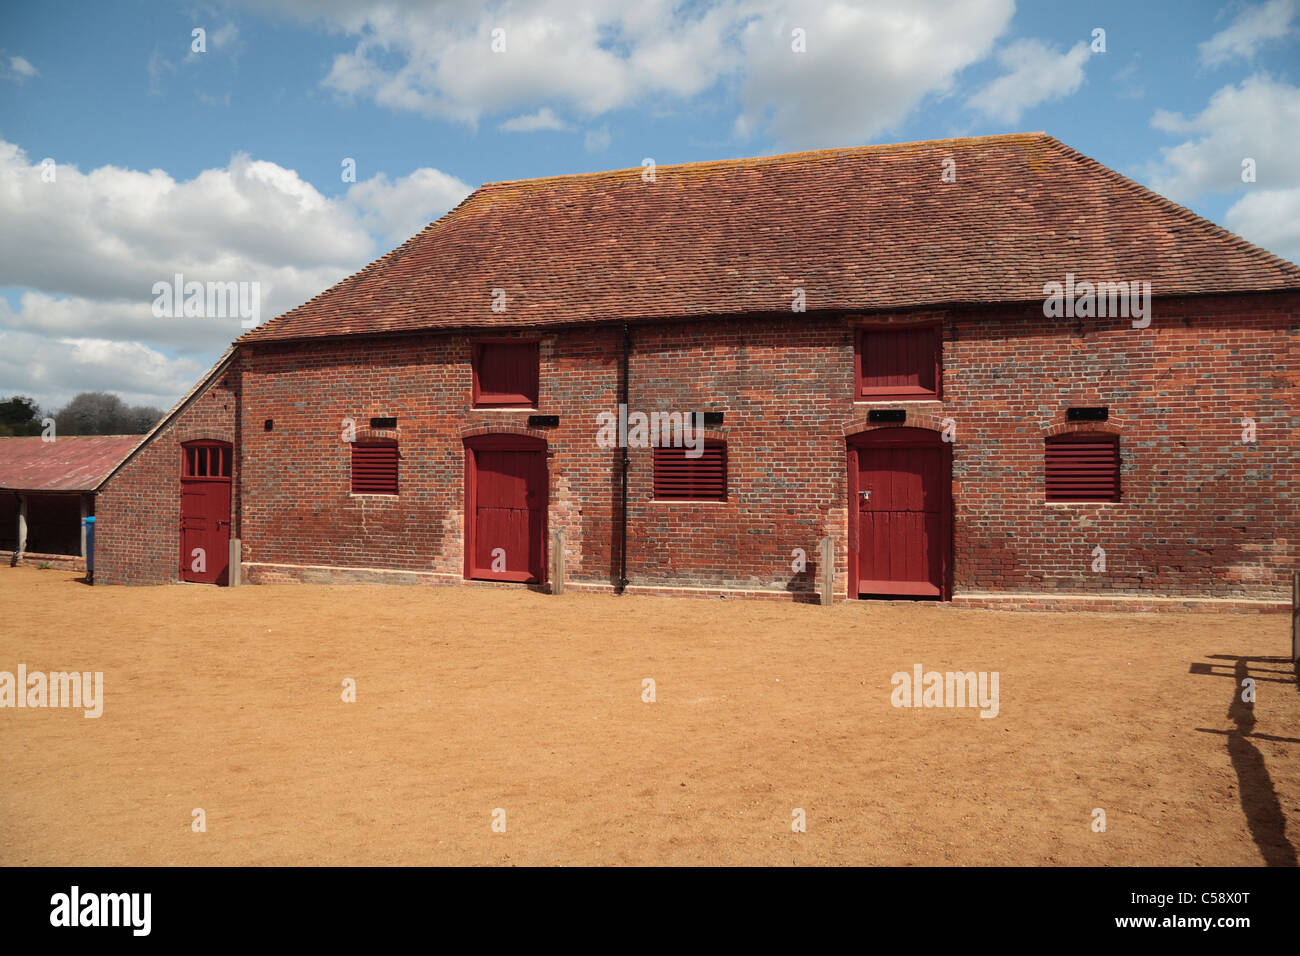 Stables in the grounds of Basing House, Old Basing, Hampshire, UK. - Stock Image